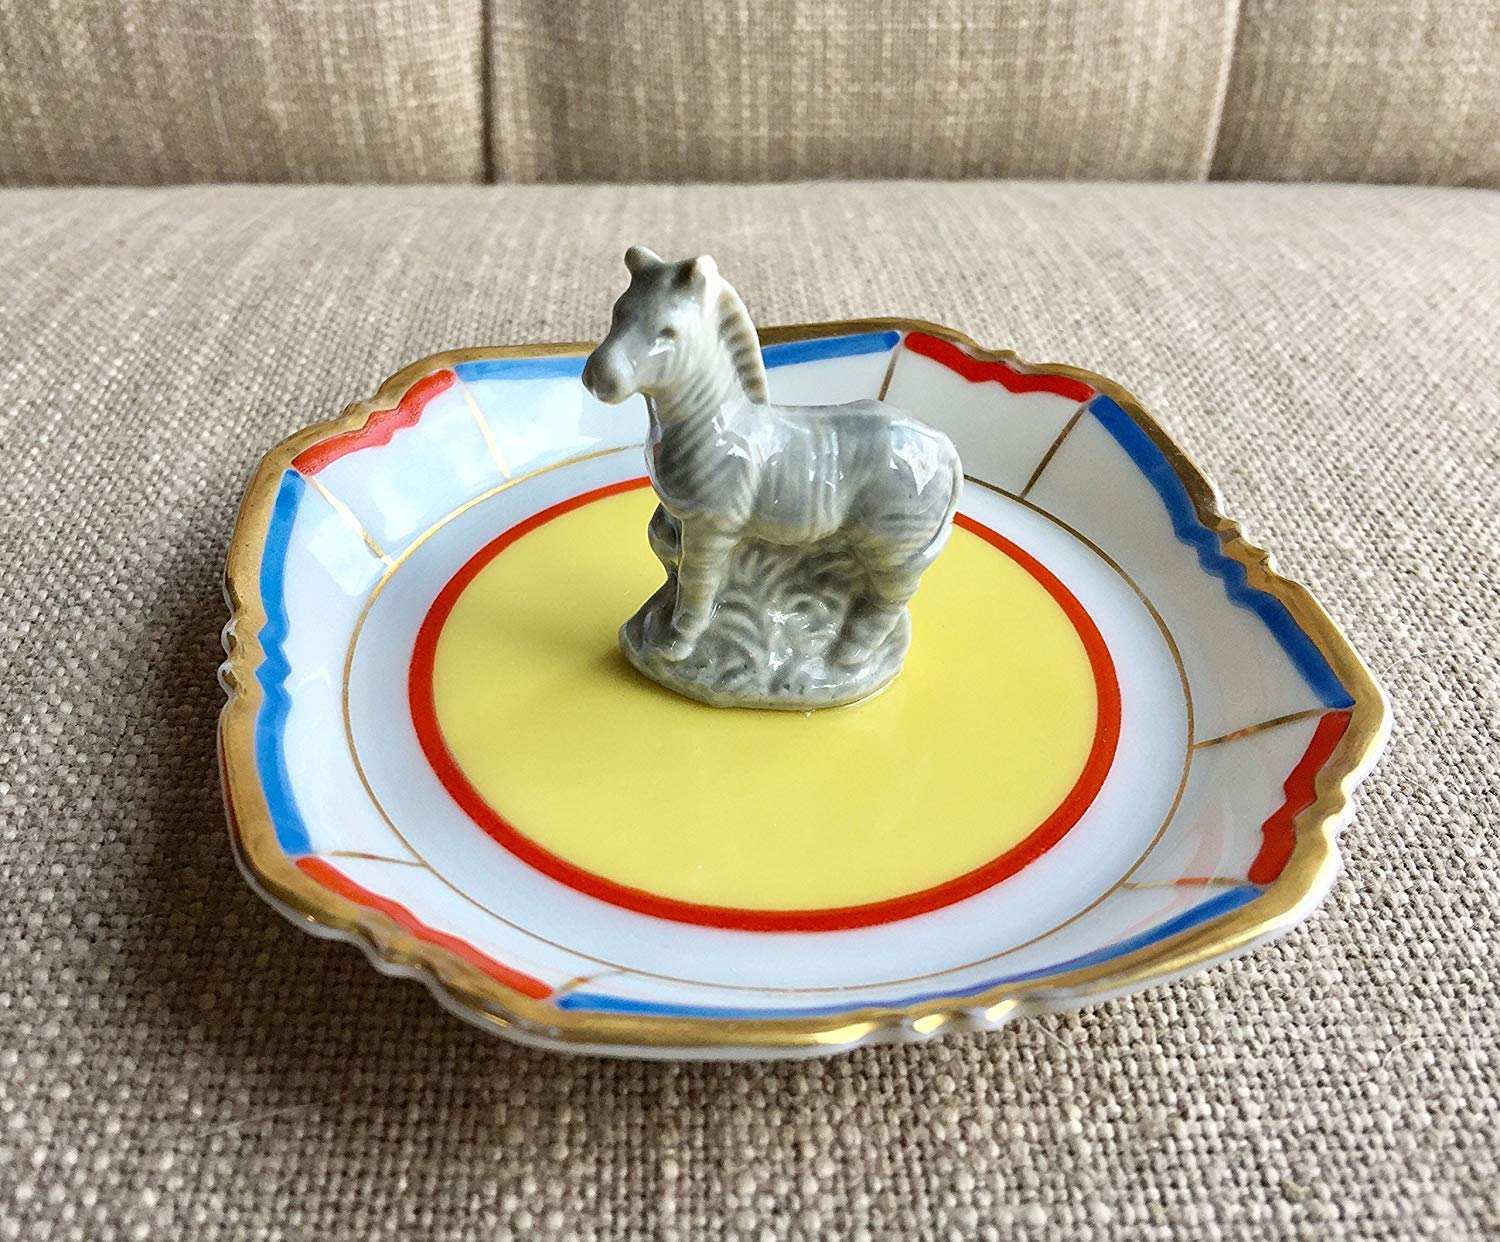 Vintage Saucer Zebra Jewelry Dish | Antique Trinket Dish | Repurposed Assemblage Jewelry Tray